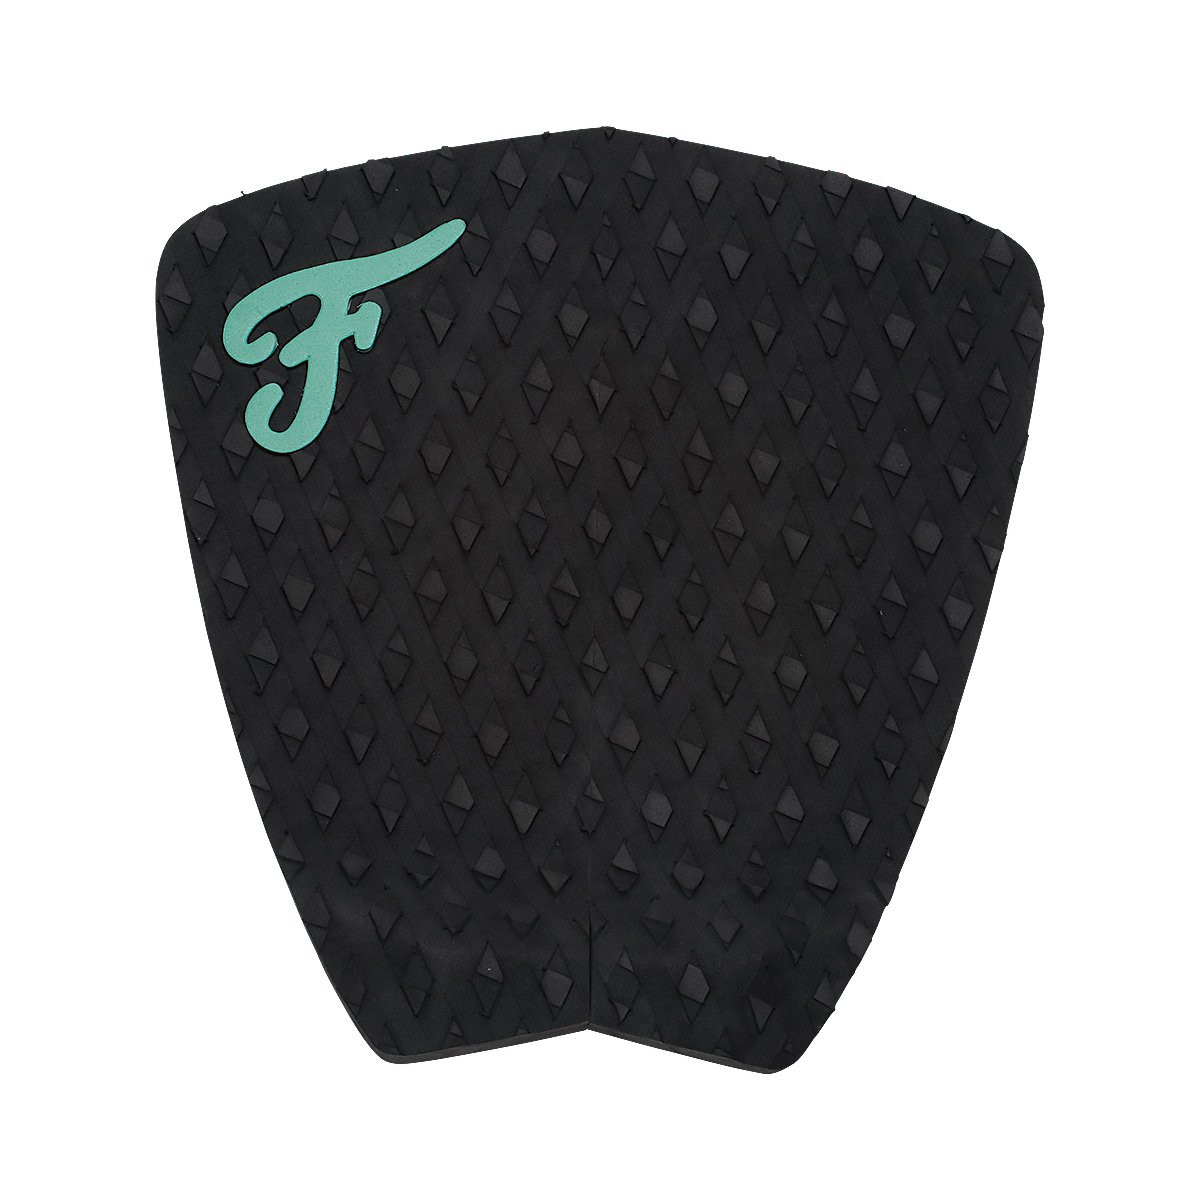 Famous-Surf-Acc-Traction-Eco-F2-Black